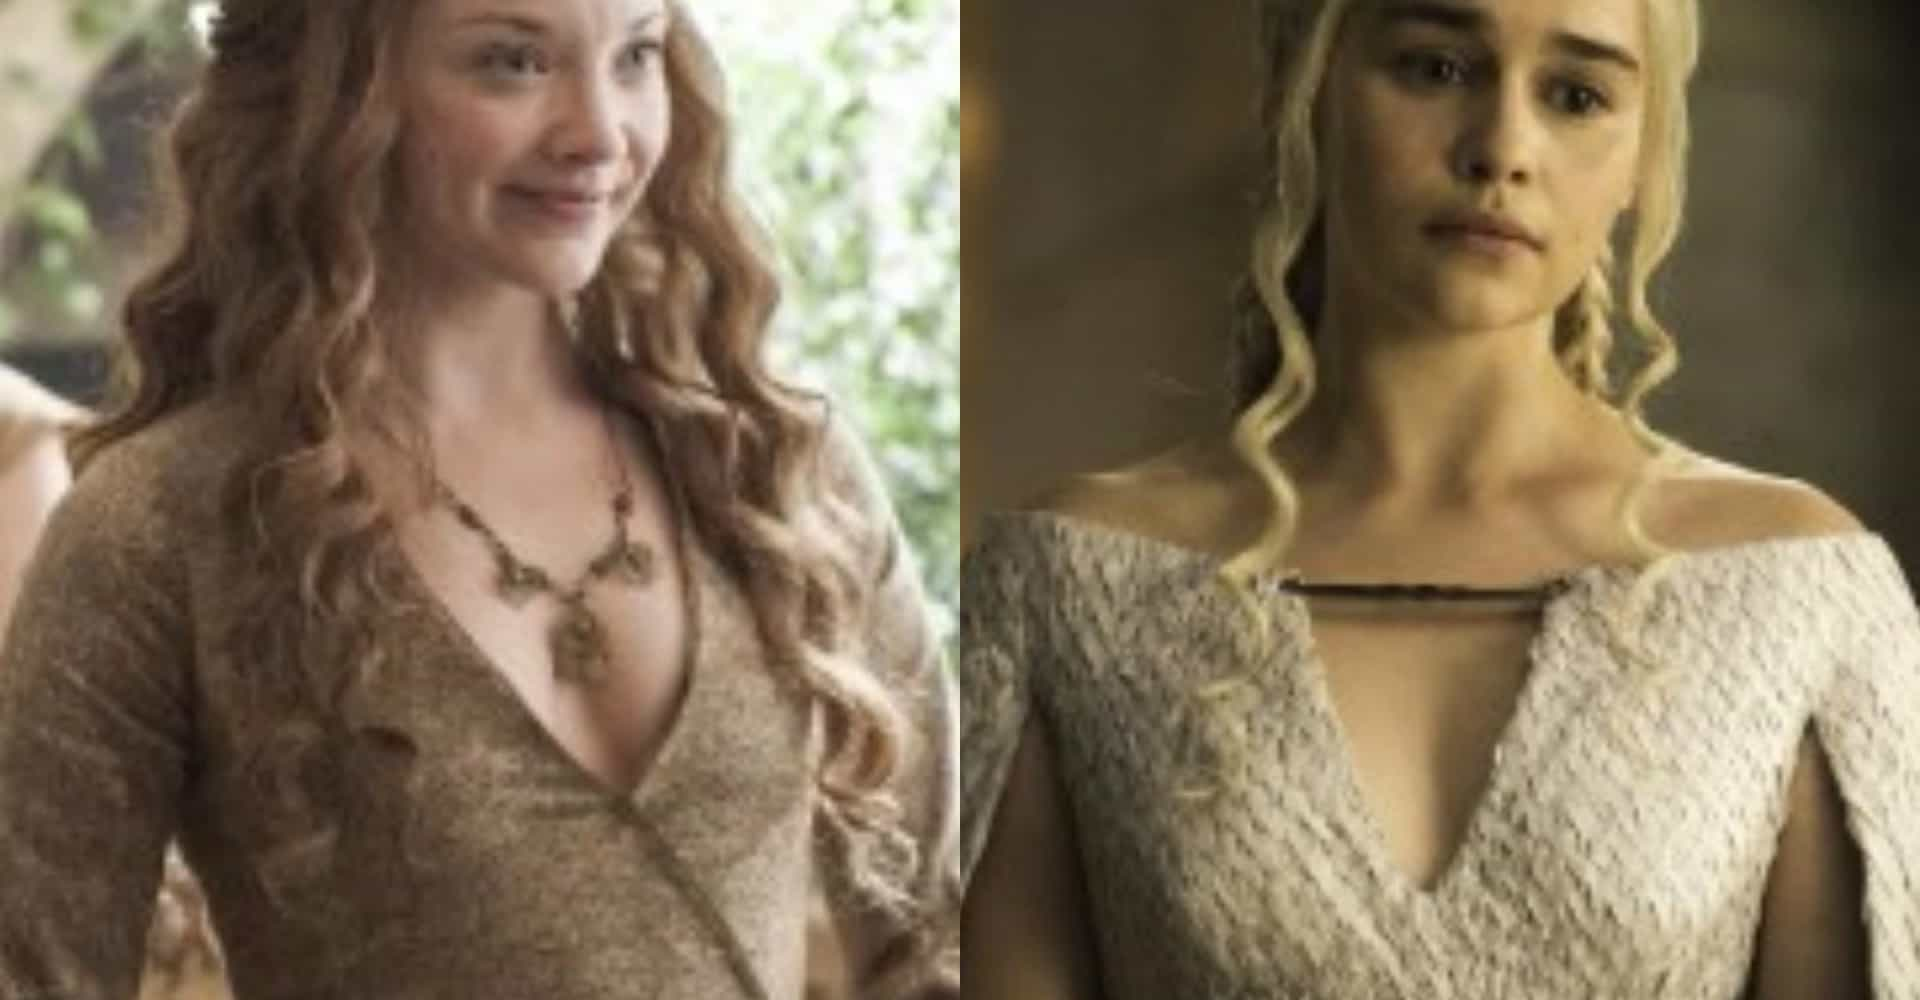 The best looks of the characters on 'Game of Thrones'